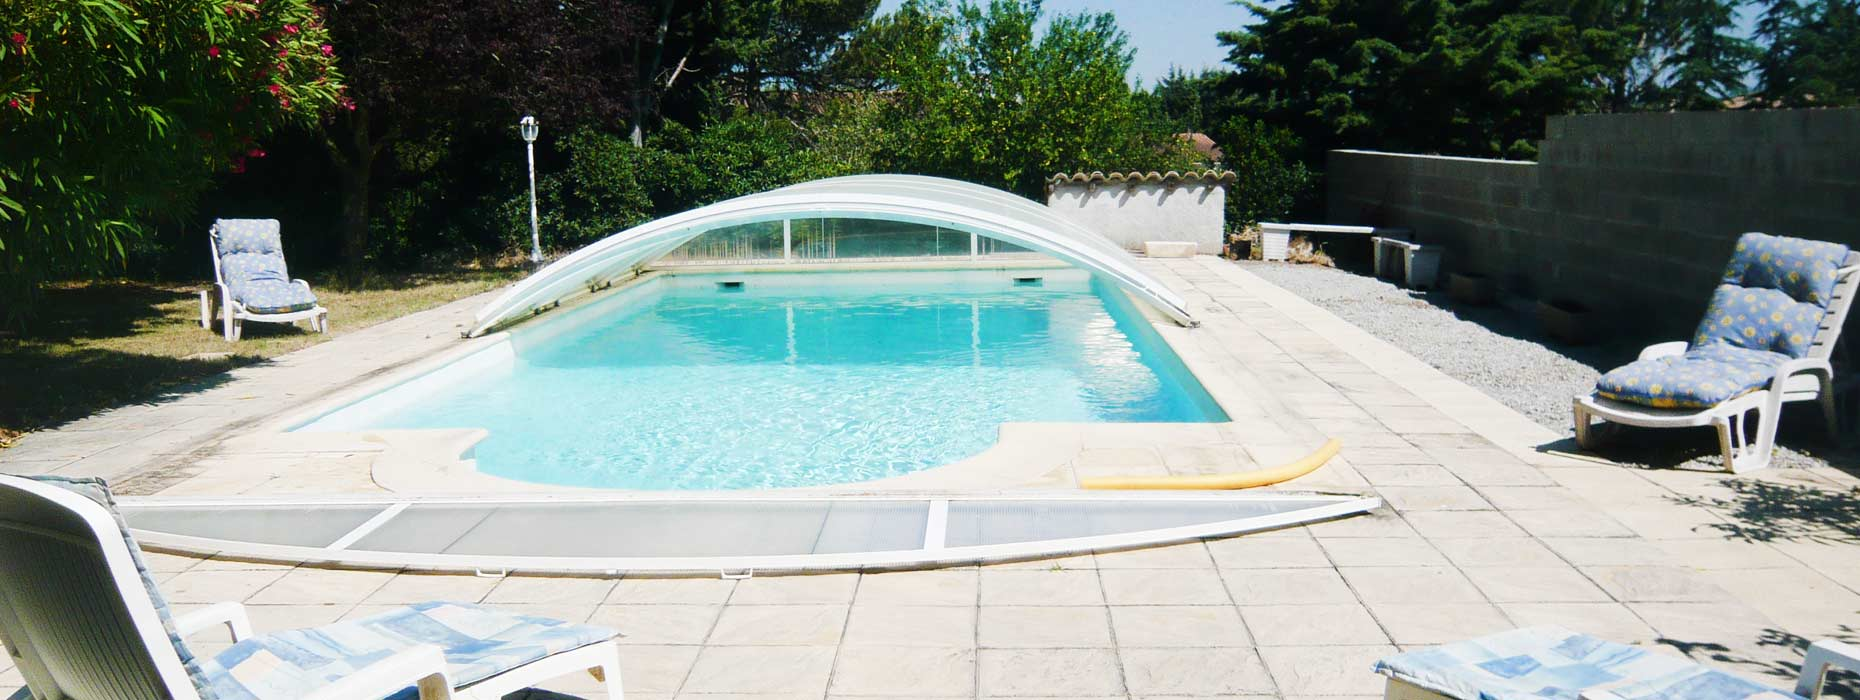 grande piscine privée